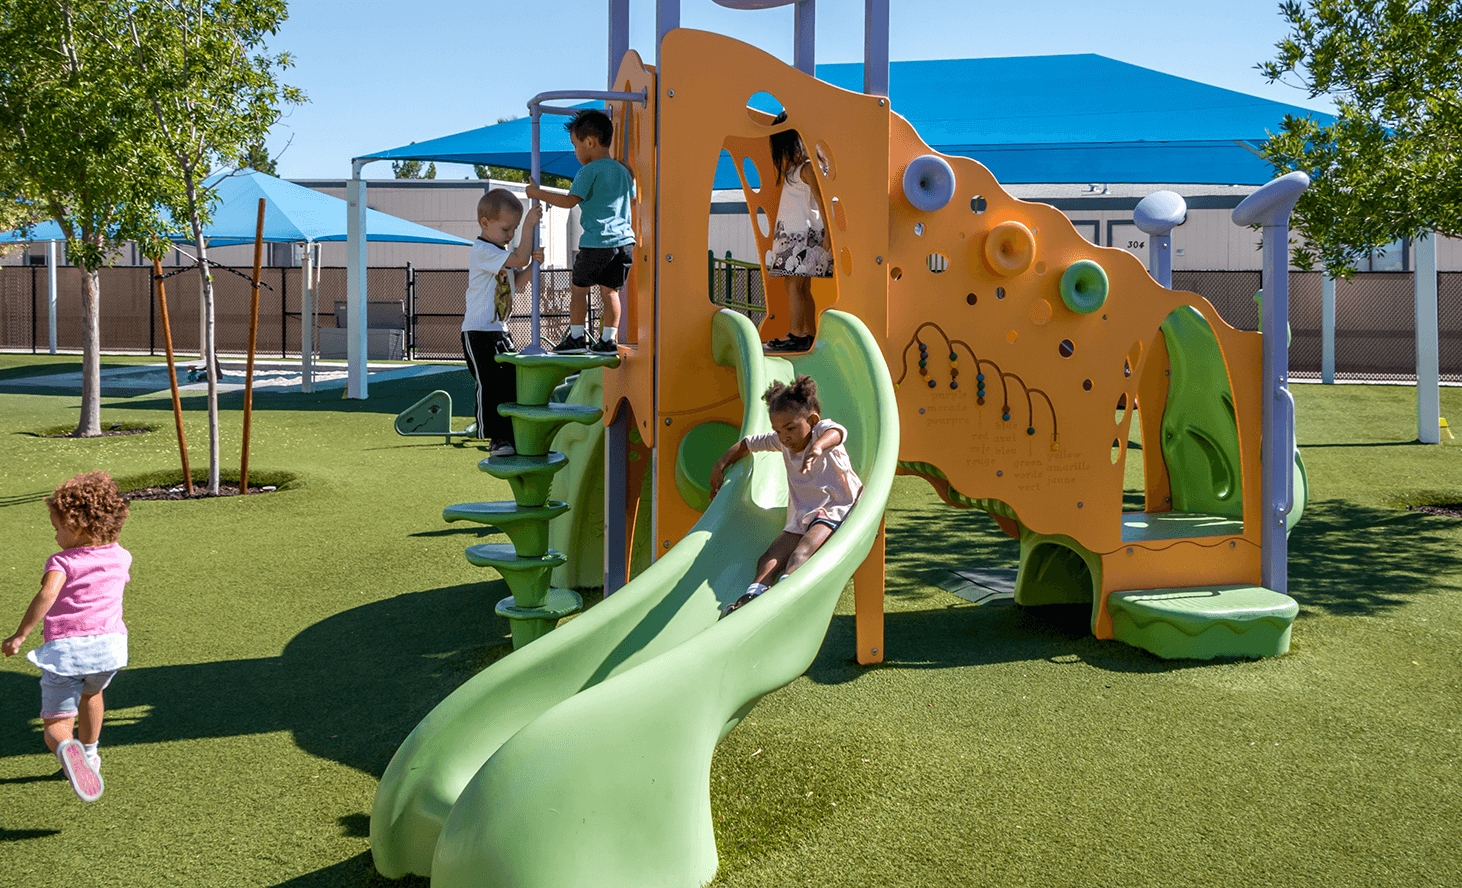 Playground | Challenger School - Silverado | Private School In Las Vegas, Nevada